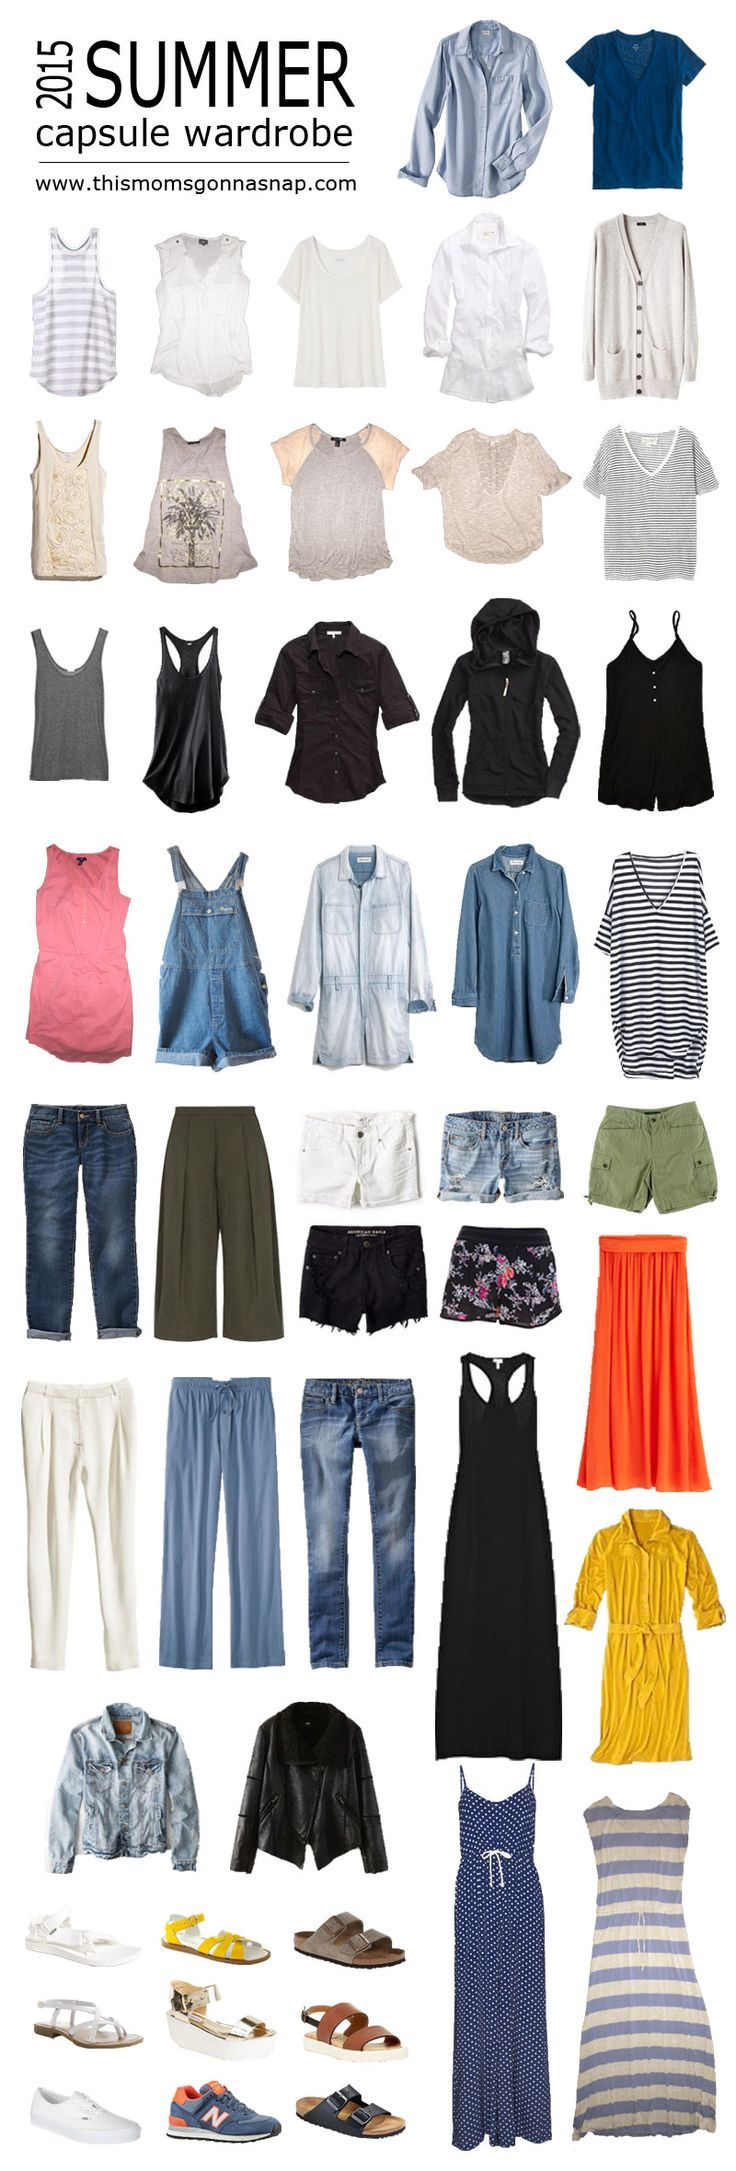 Mom Style {Summer Capsule Wardrobe} (This Mom's Gonna SNAP